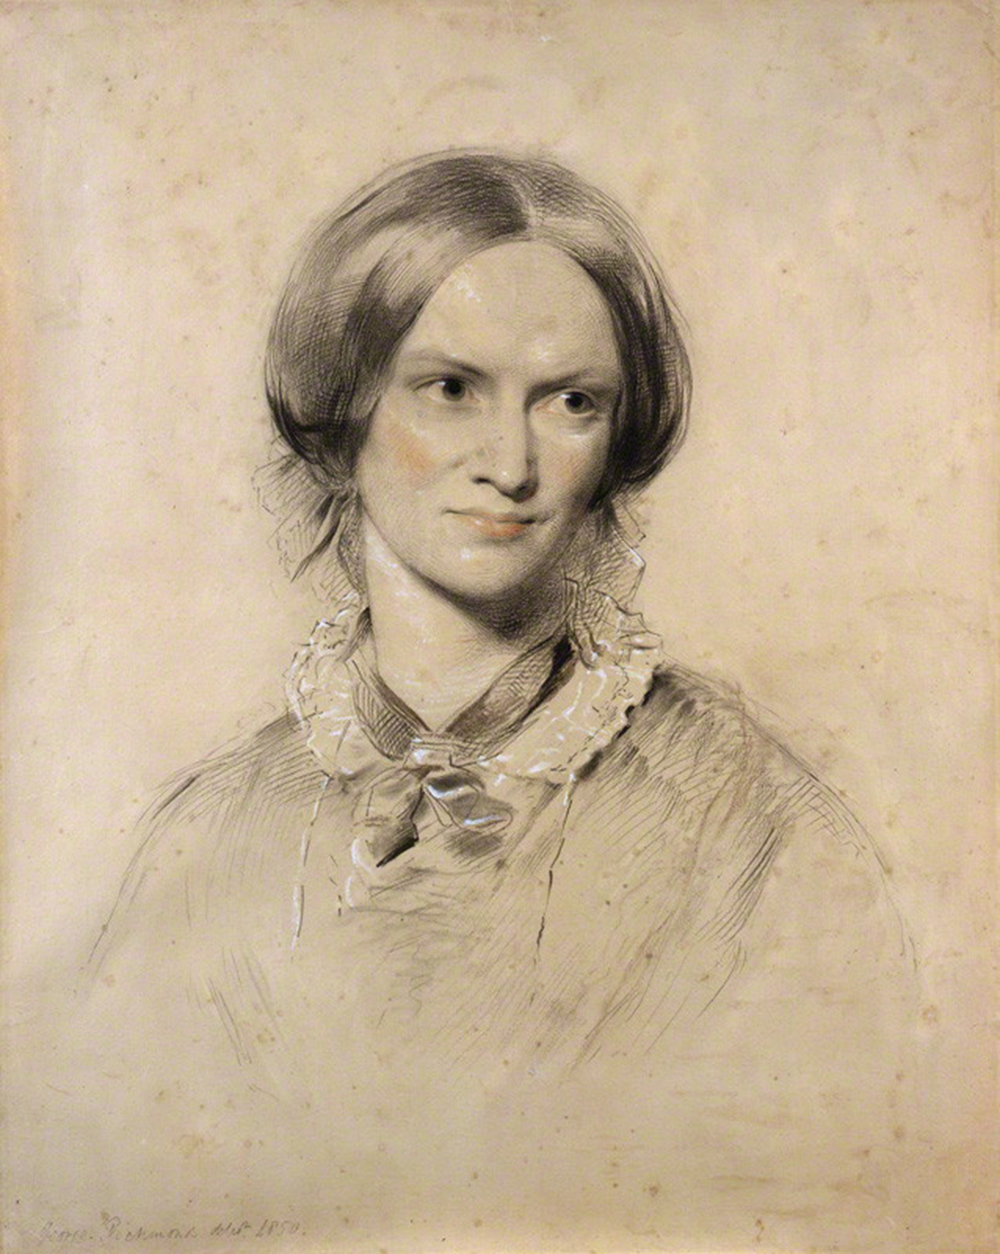 Charlotte Brontë, chalk drawing by George Richmond, 1850. © National Portrait Gallery, London.